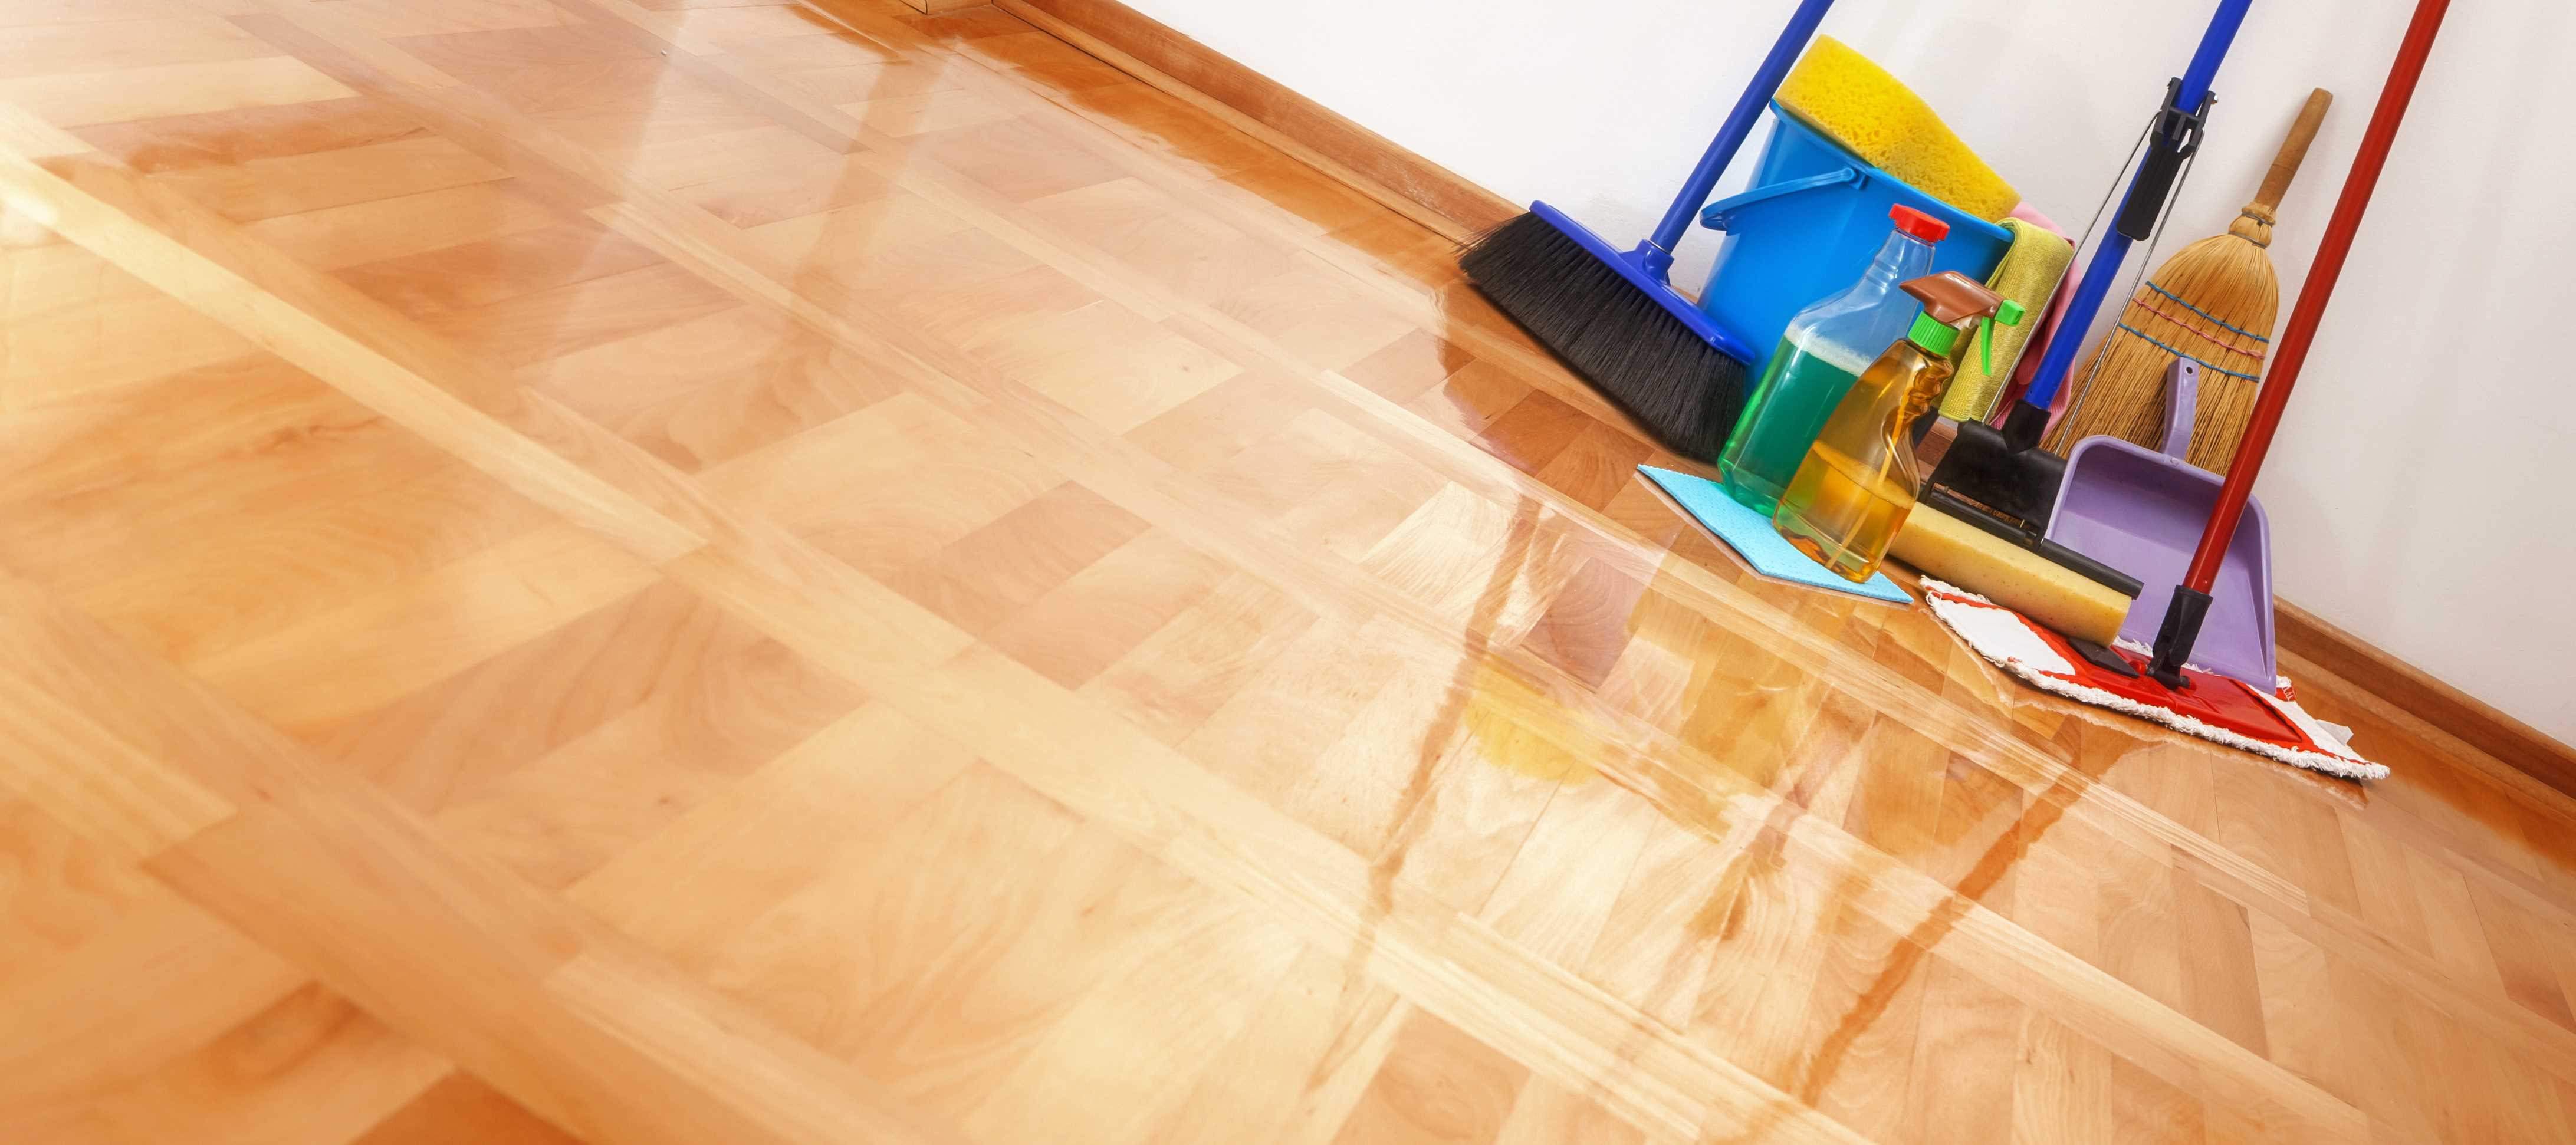 How to Wax Floors - Professional Cleaning Services in Springfield Missouri